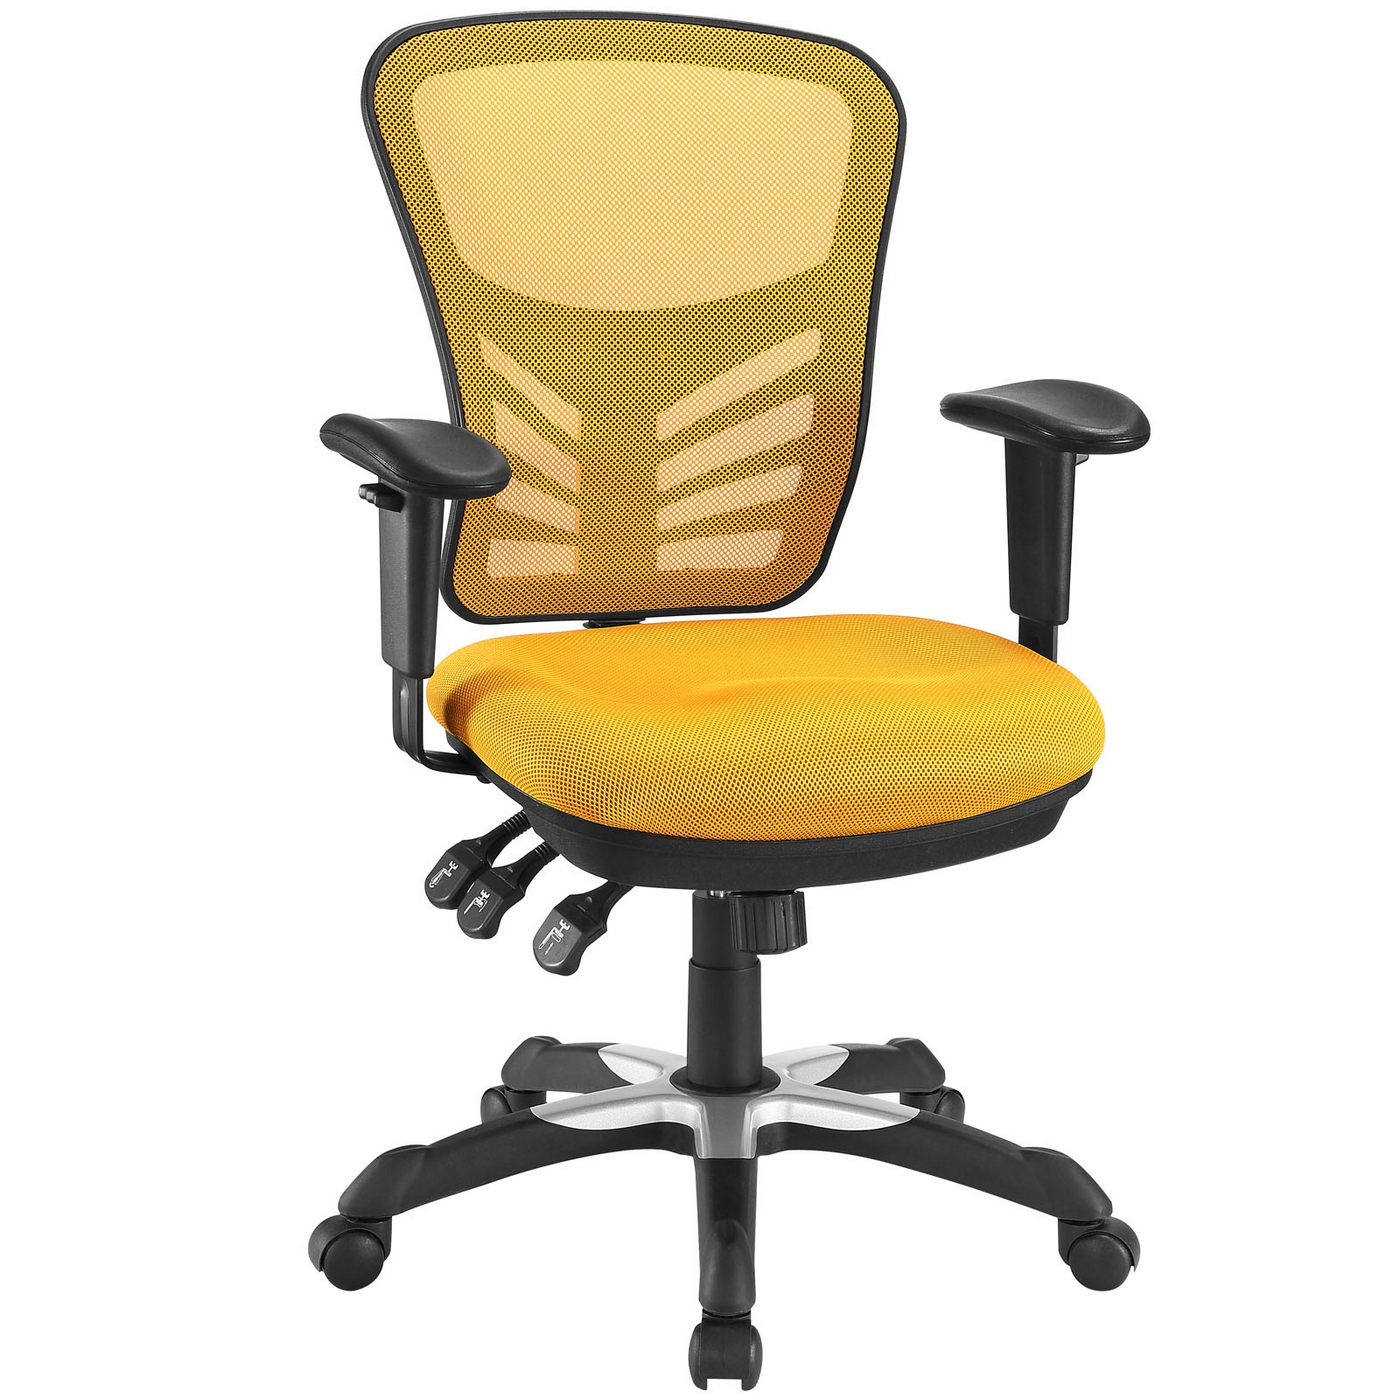 office chair orange how much is a bean bag at walmart articulate modern adjustable ergonomic mesh